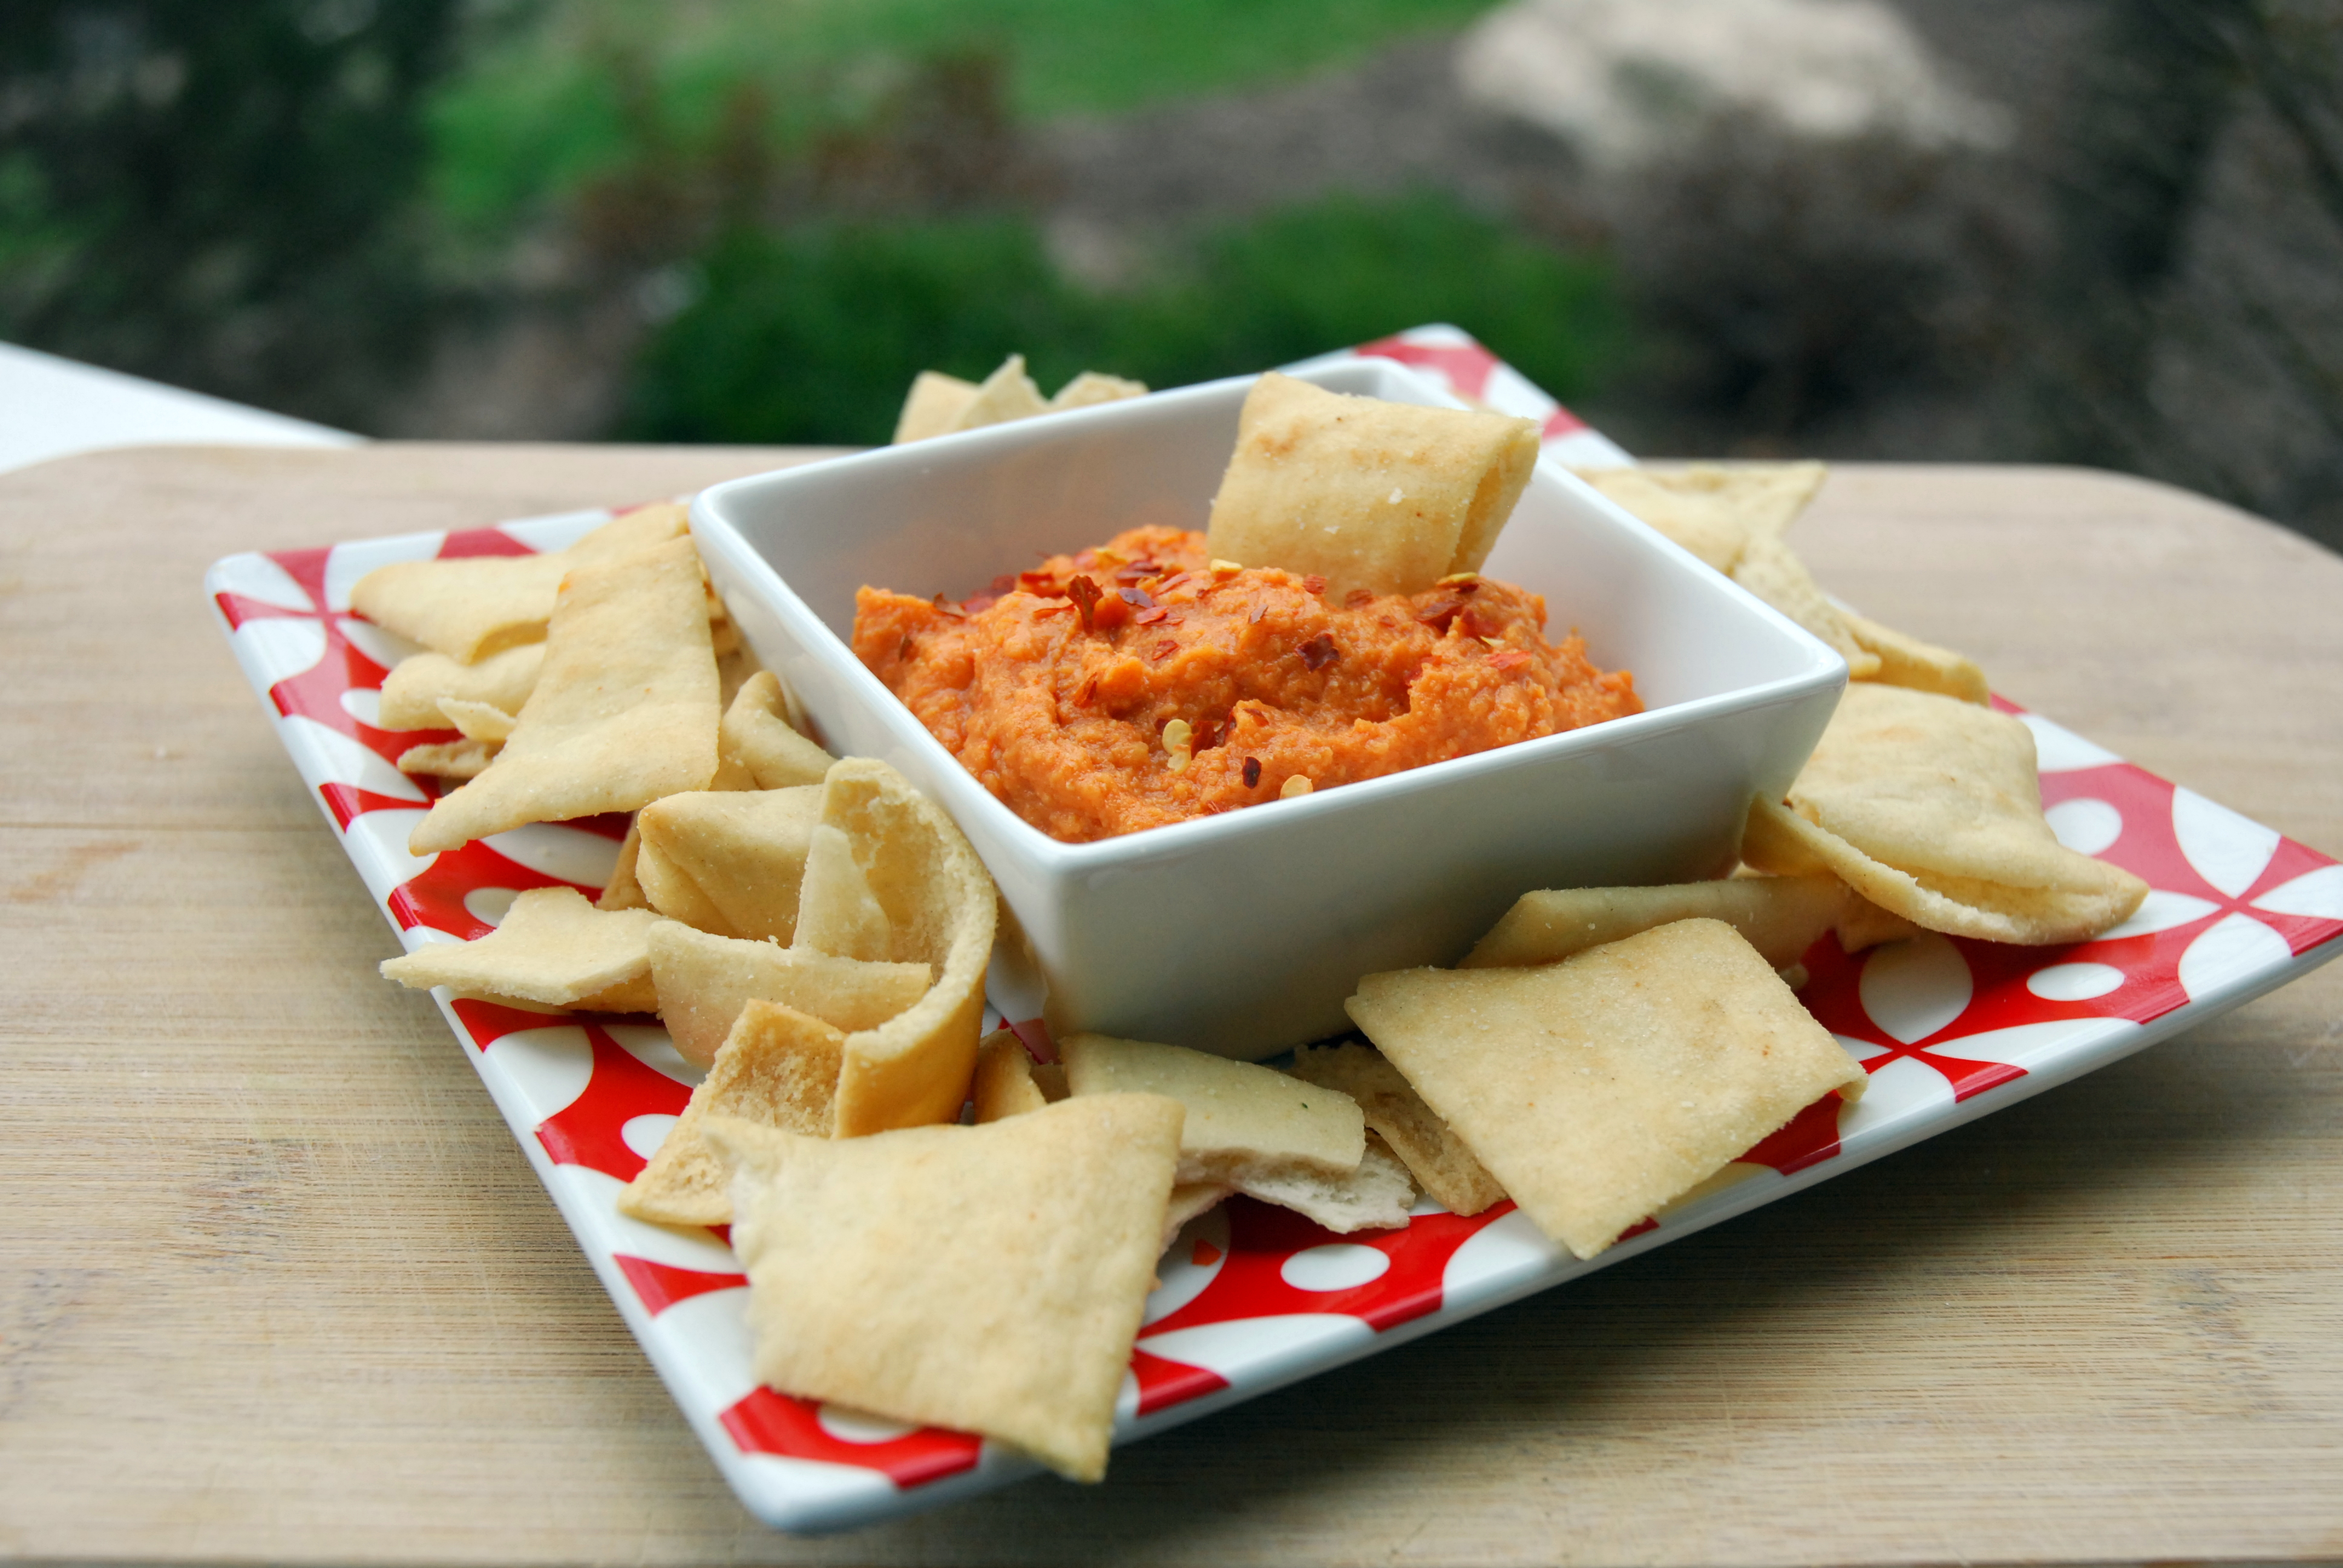 Roasted Red Pepper Hummus with Homemade Roasted Red Peppers |